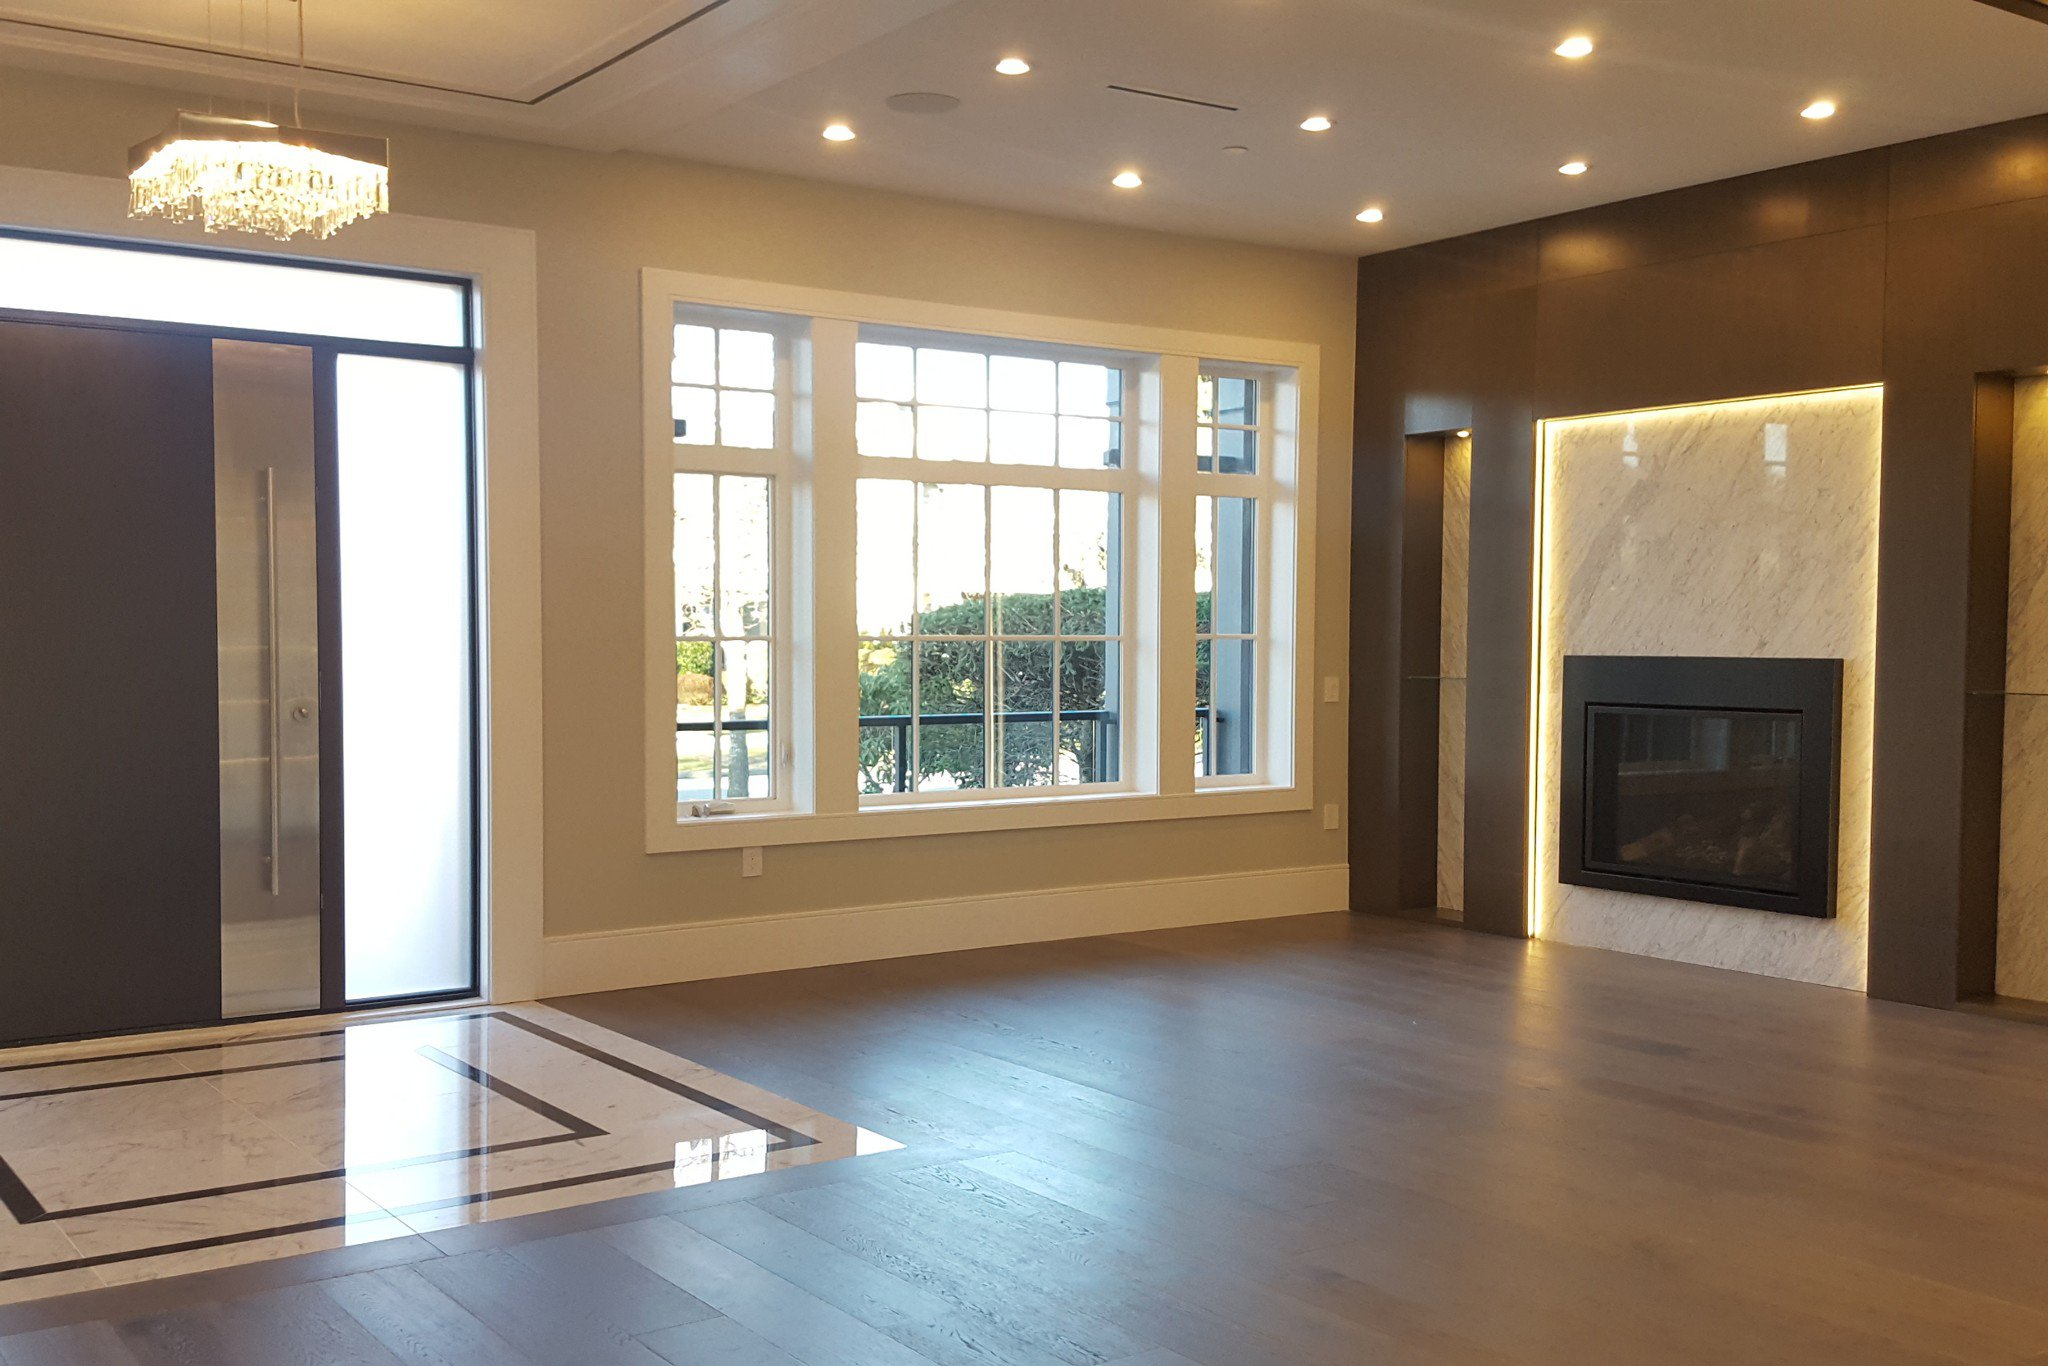 Photo 2: Photos: 2638 W 22ND Avenue in Vancouver: Arbutus House for sale (Vancouver West)  : MLS®# R2335097